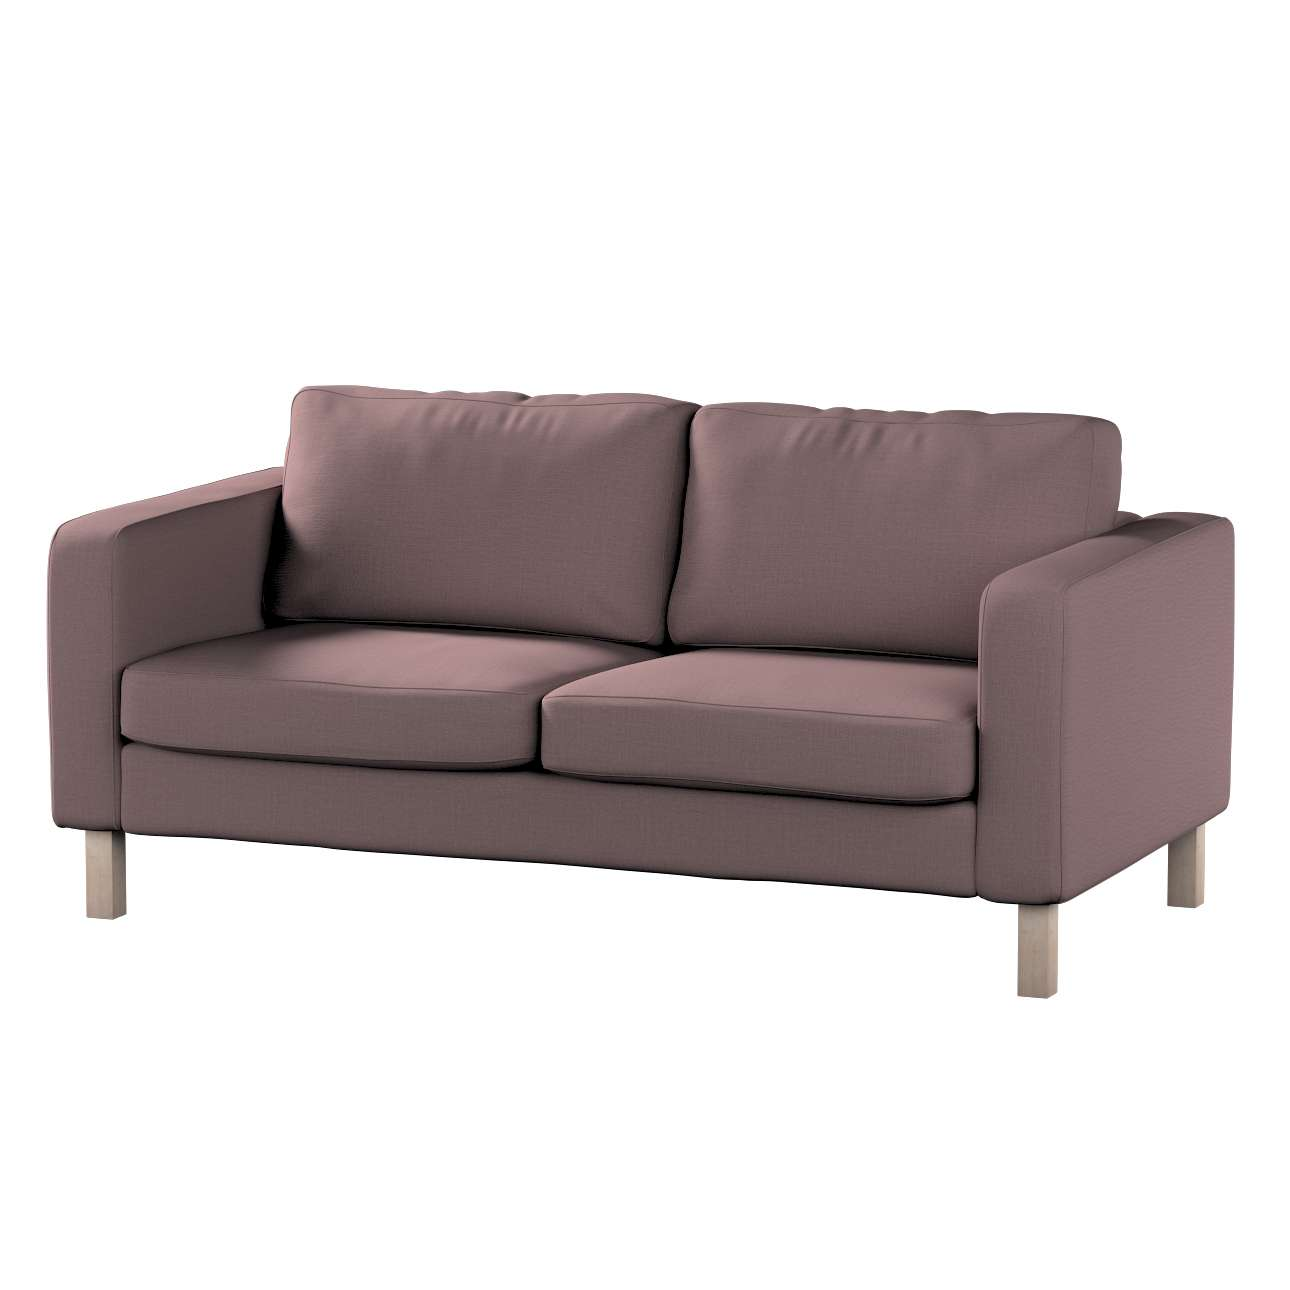 Karlstad 2-seater sofa cover in collection Living, fabric: 106-63